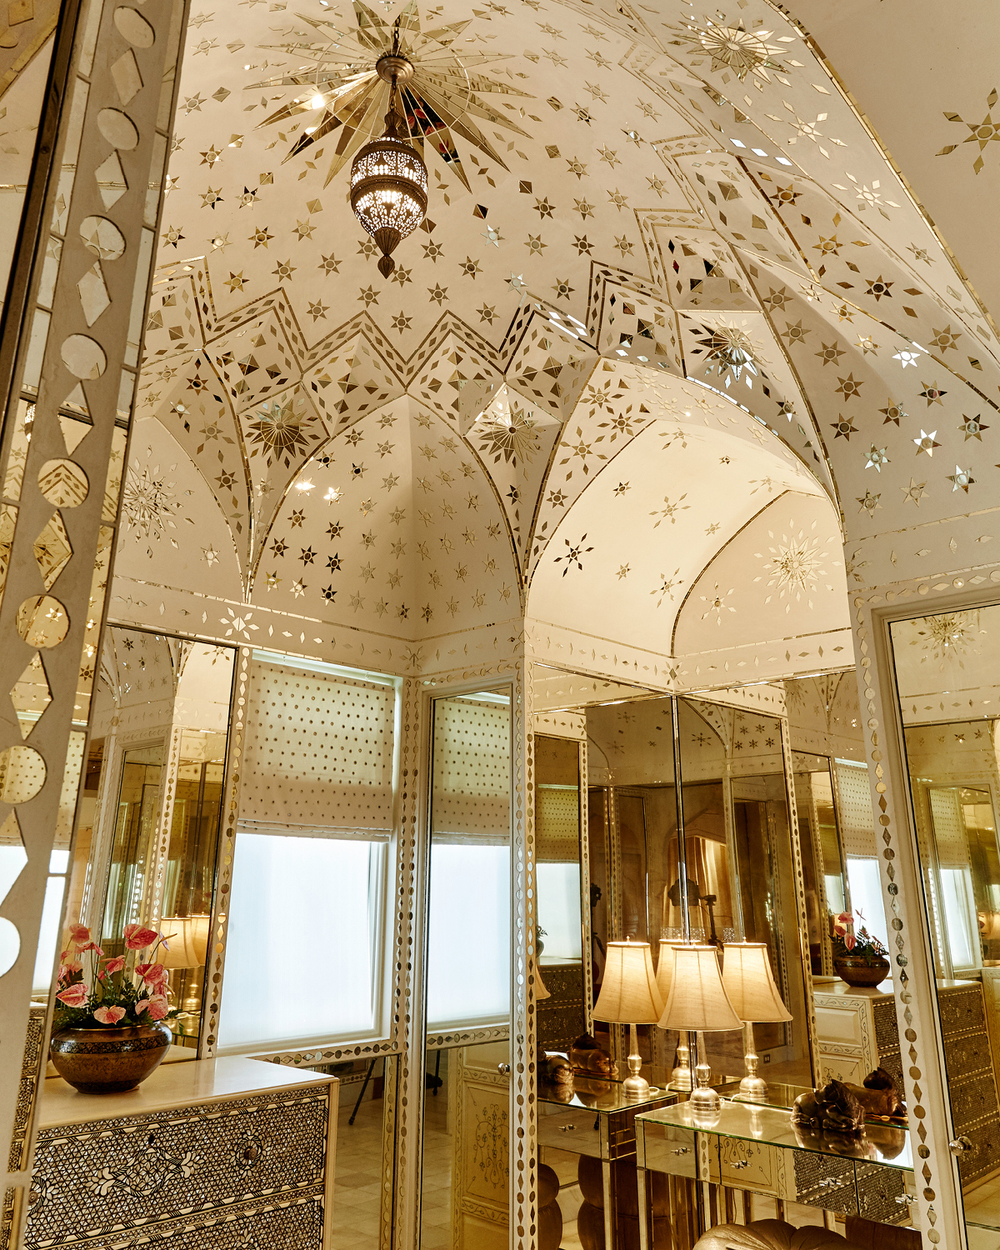 VANITY ROOM AT SHANGRI LA